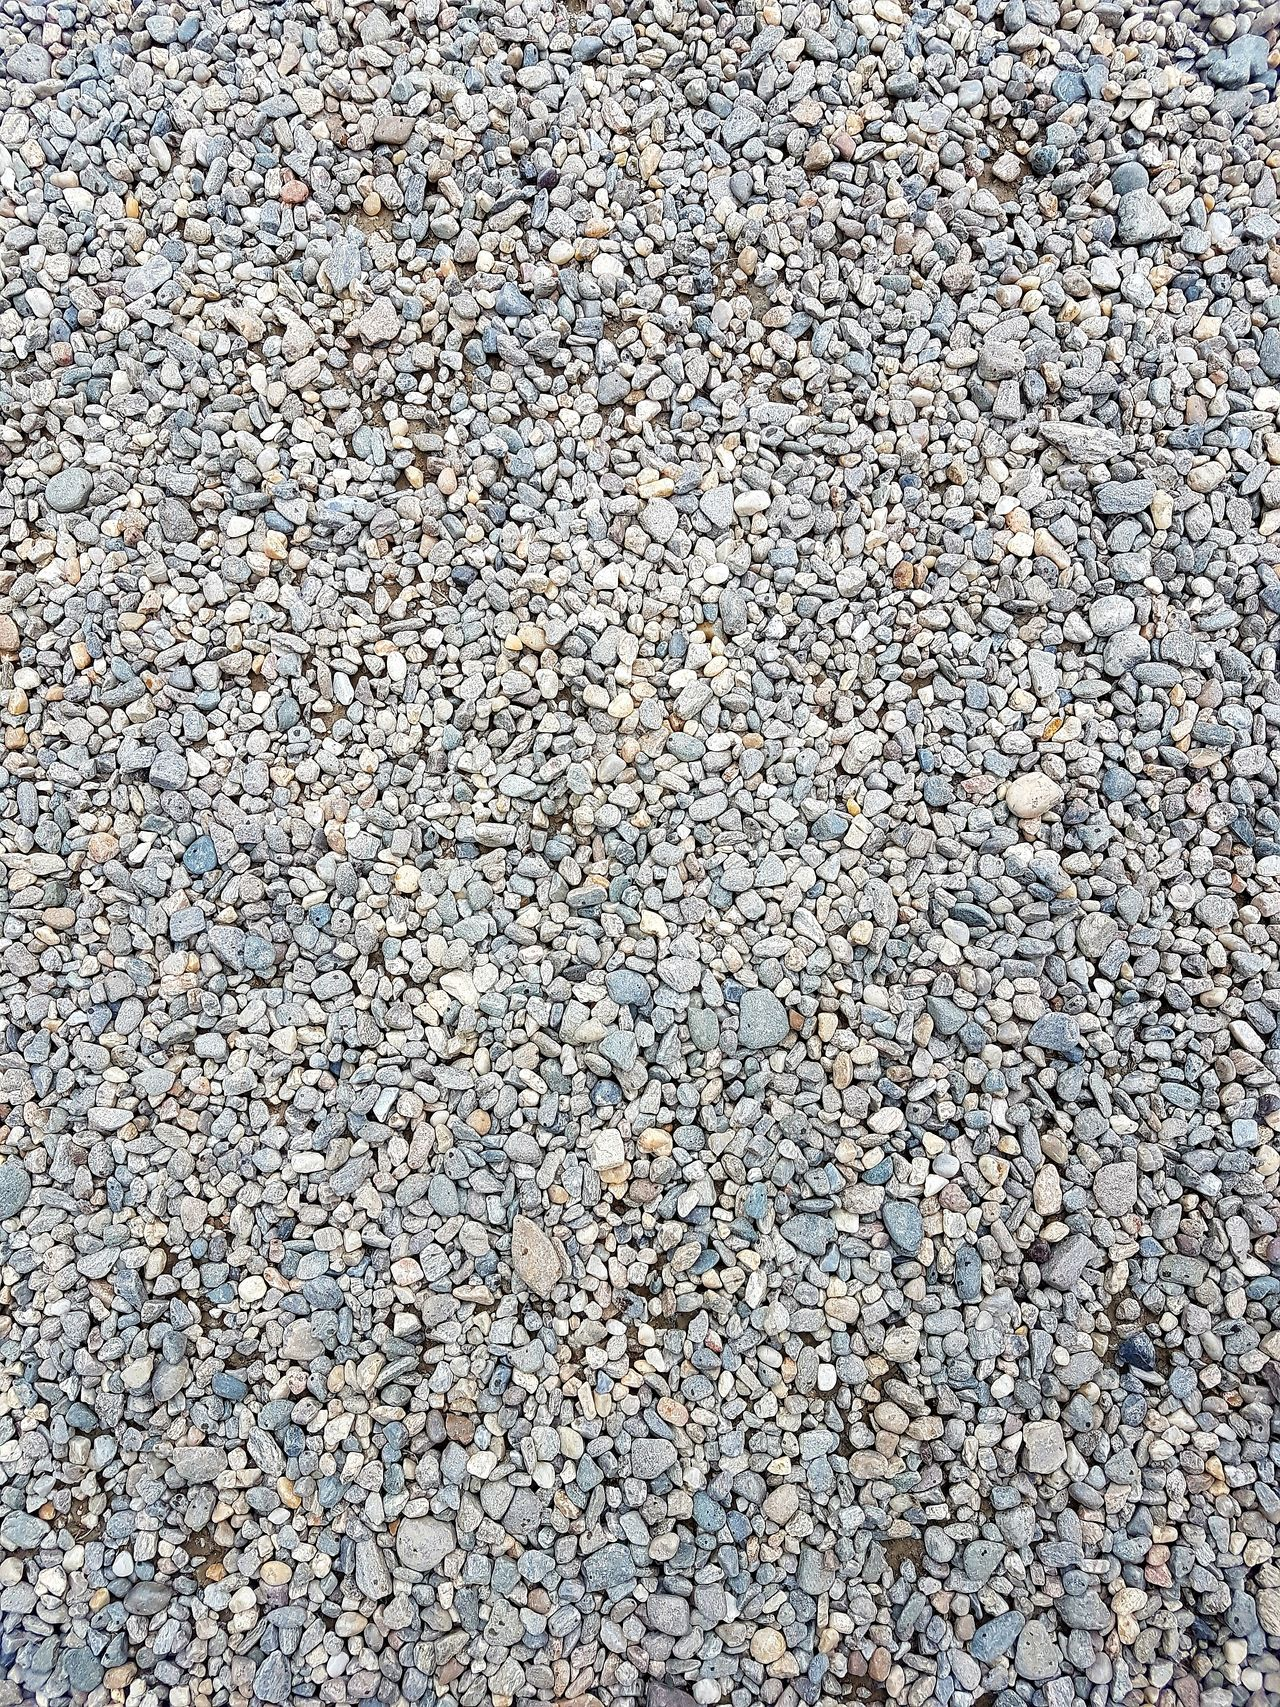 Gravel texture - Gravel Road Backgrounds Full Frame Textured  Pattern Close-up No People Day Outside Photography Road Stone Material Stones Stone Road Gravel Path Gravel Roads Gravel Texture Gravel And Dust Texture And Surfaces Nature Photography Nature Textures Patterns In Nature Pattern Pattern Nature Stone